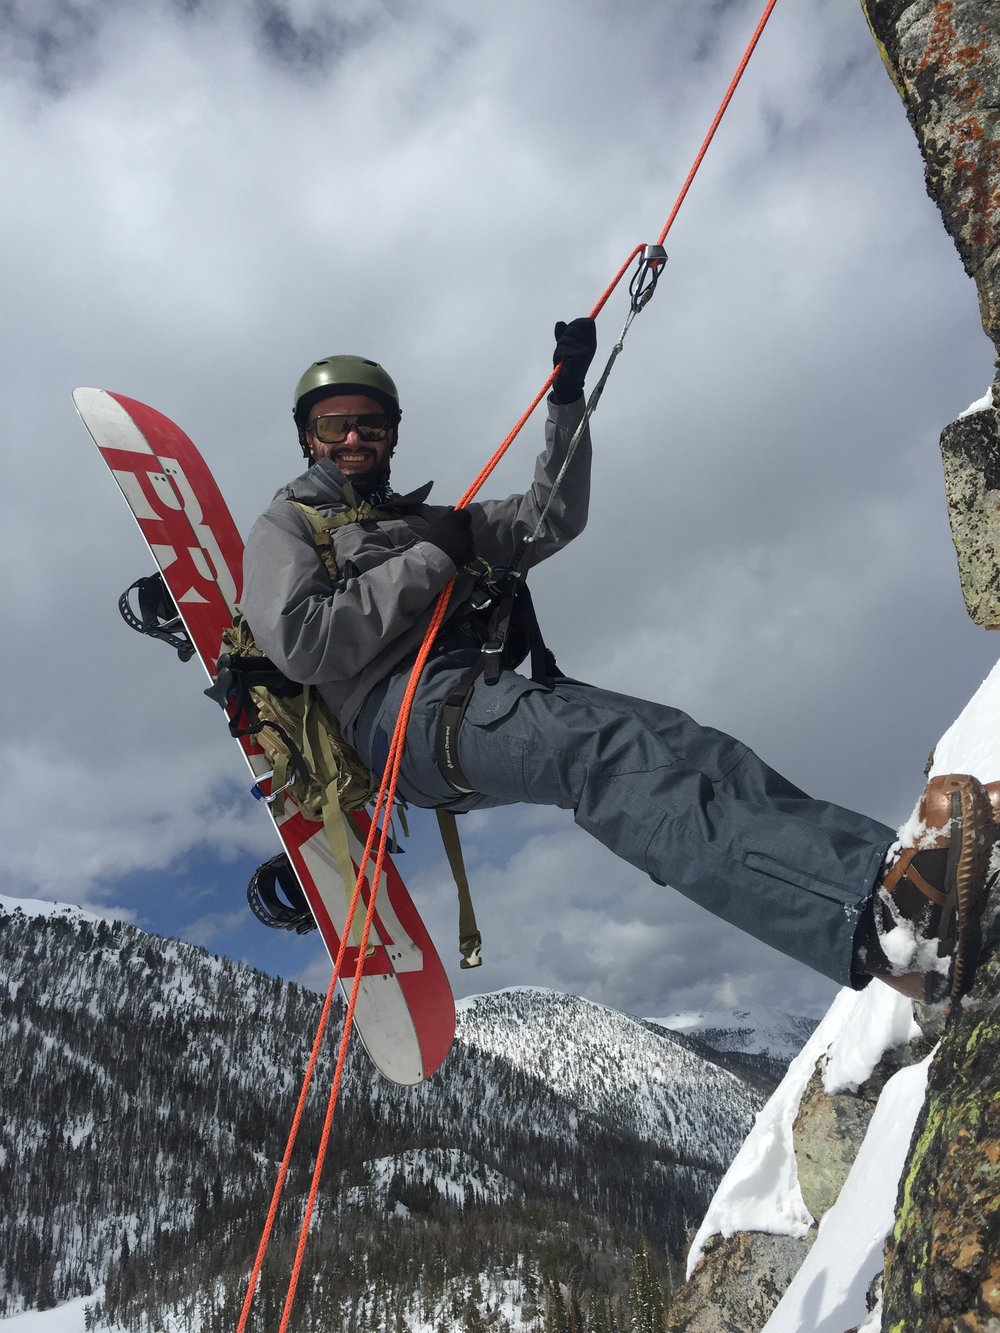 Learn to build anchors and safely rappel with Big Sky Backcountry Guides